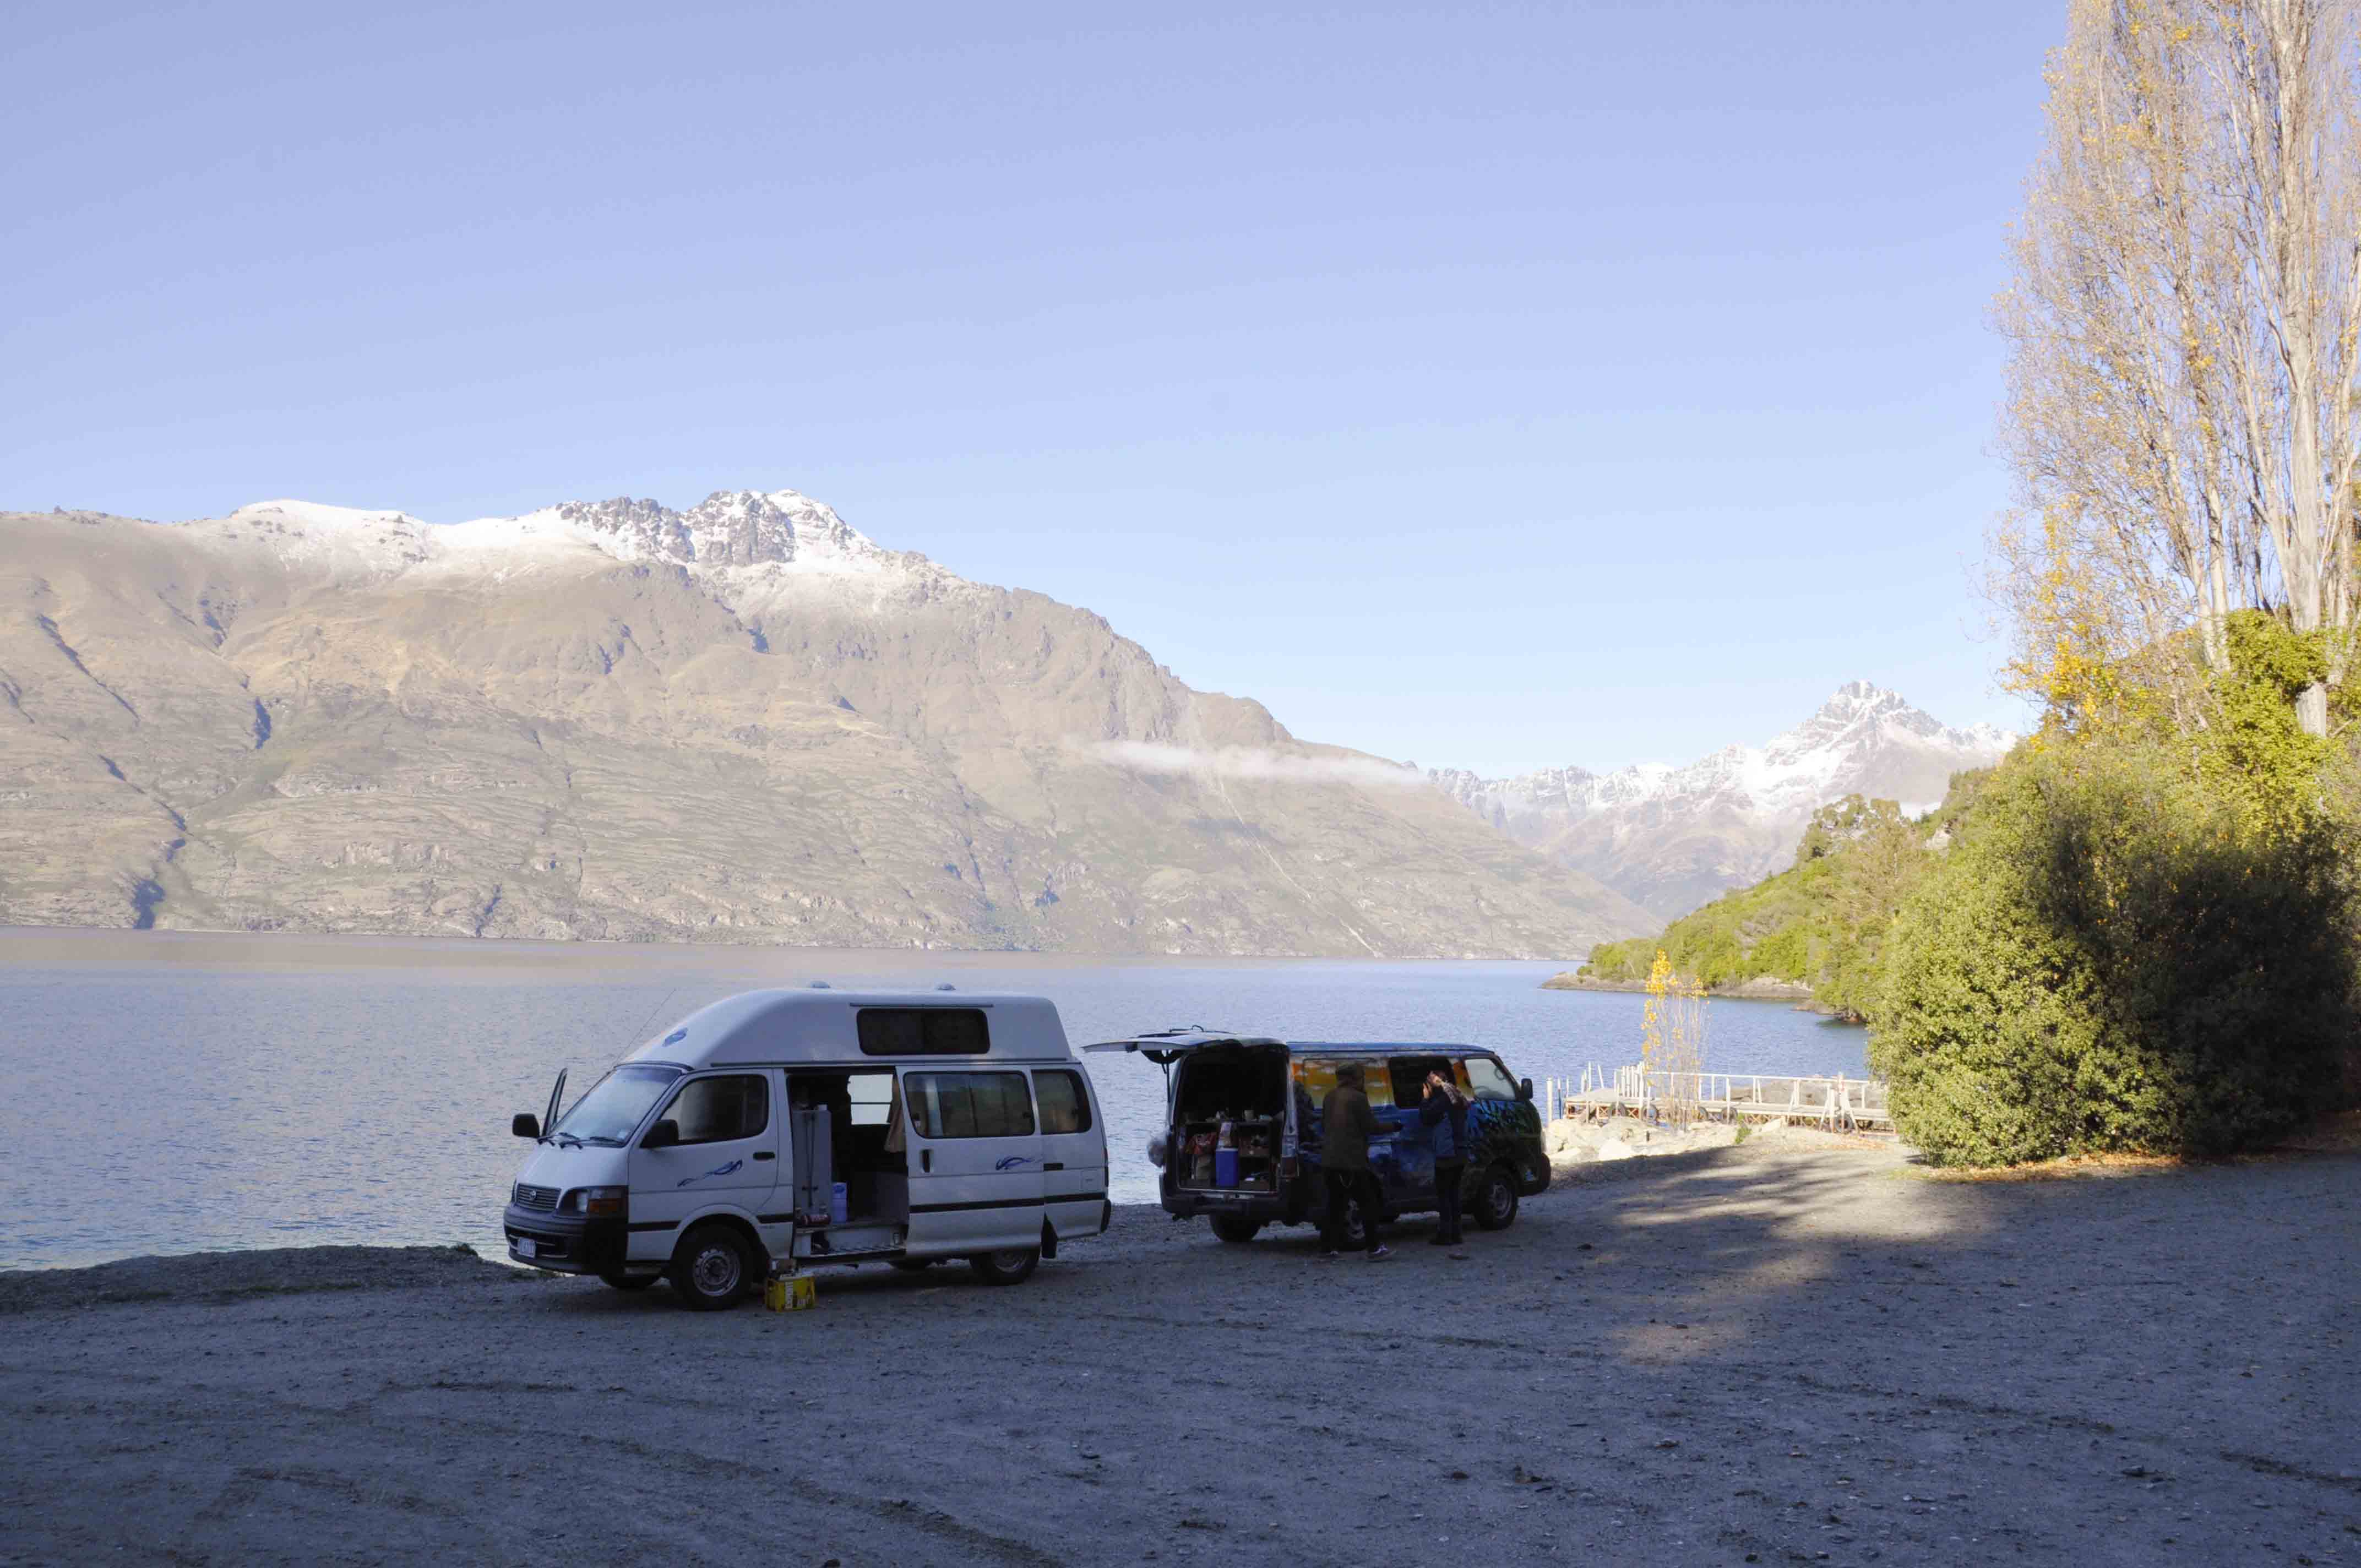 Camping in Sunshine Bay (Queenstown)